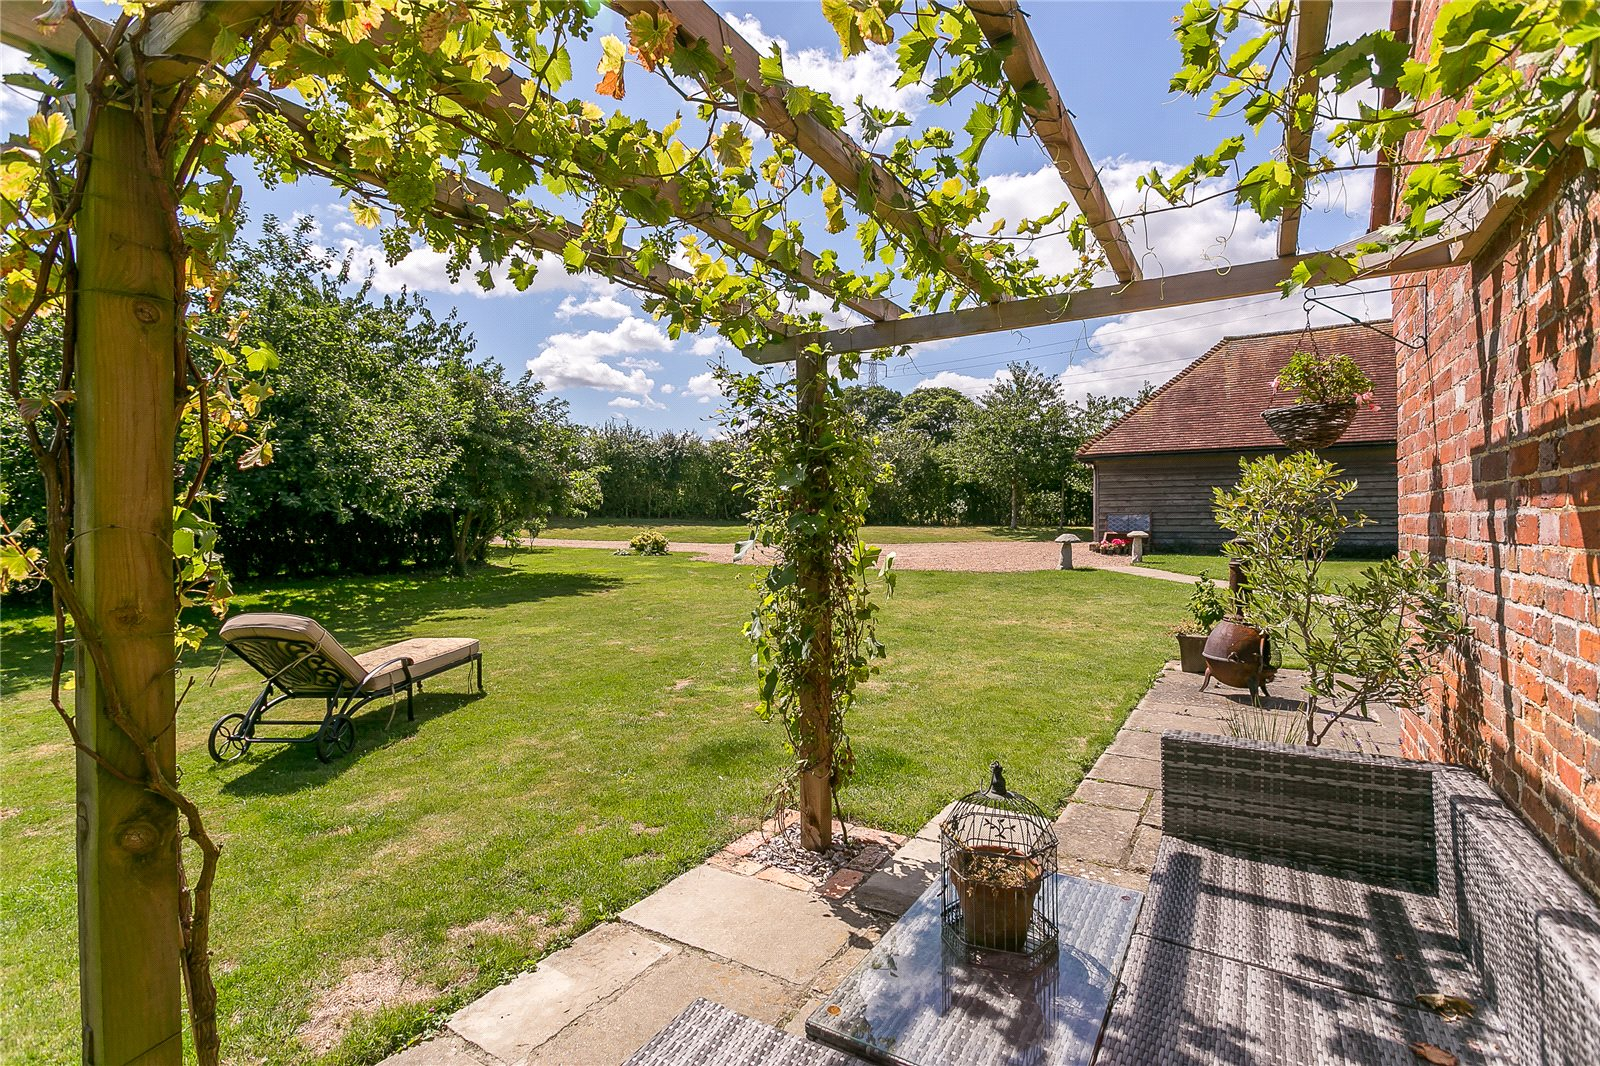 Additional photo for property listing at Hole Lane, Bentley, Nr. Farnham, Surrey, GU10 Surrey, Angleterre